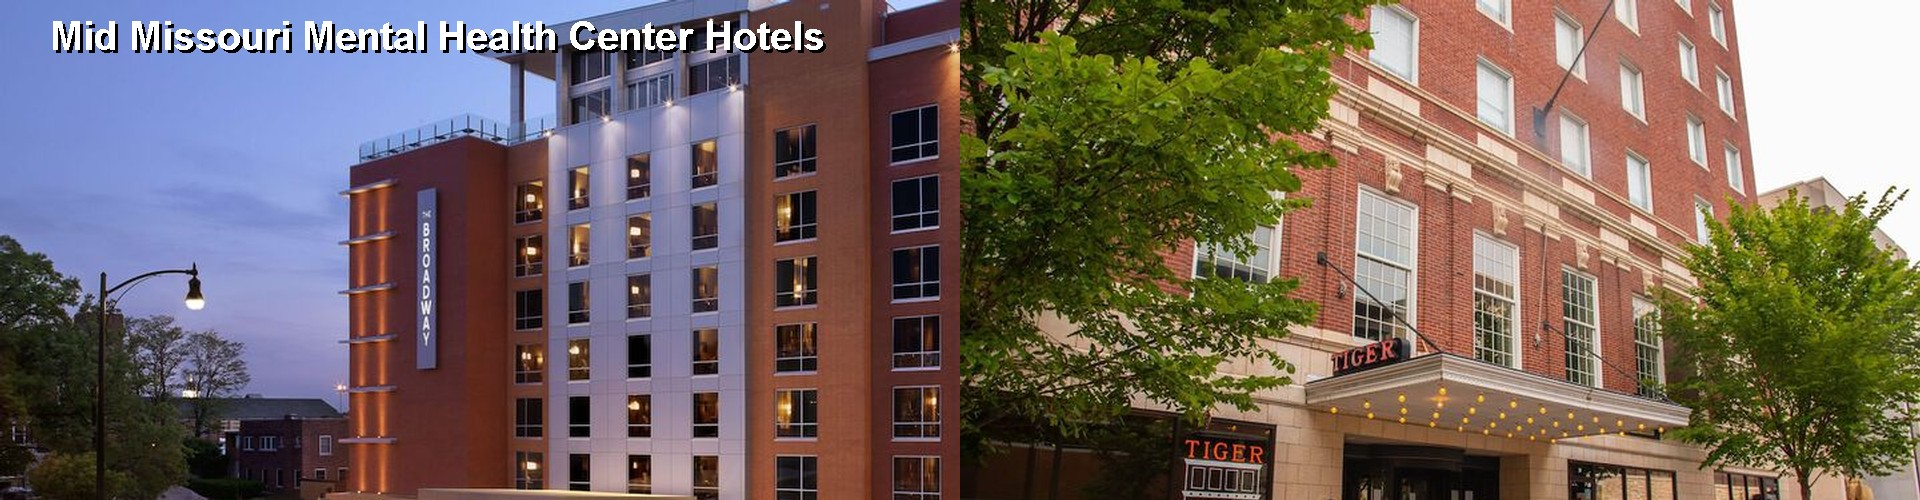 5 Best Hotels near Mid Missouri Mental Health Center